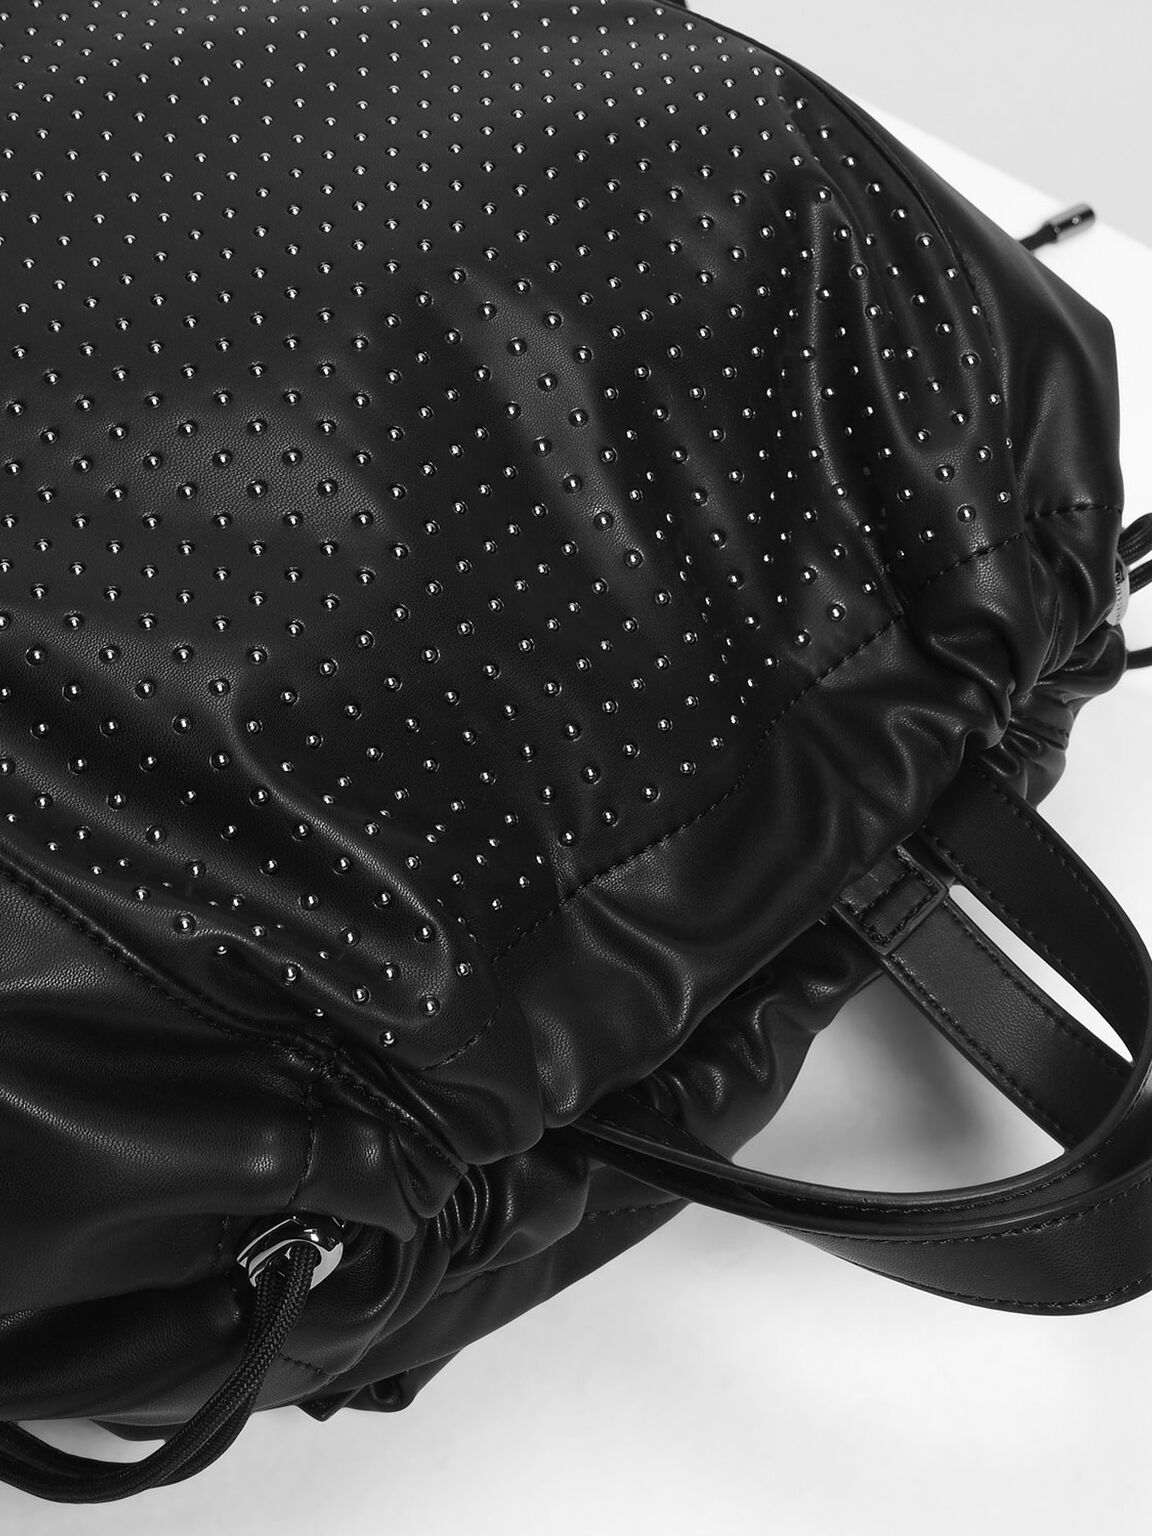 Micro Stud Drawstring Backpack, Black, hi-res